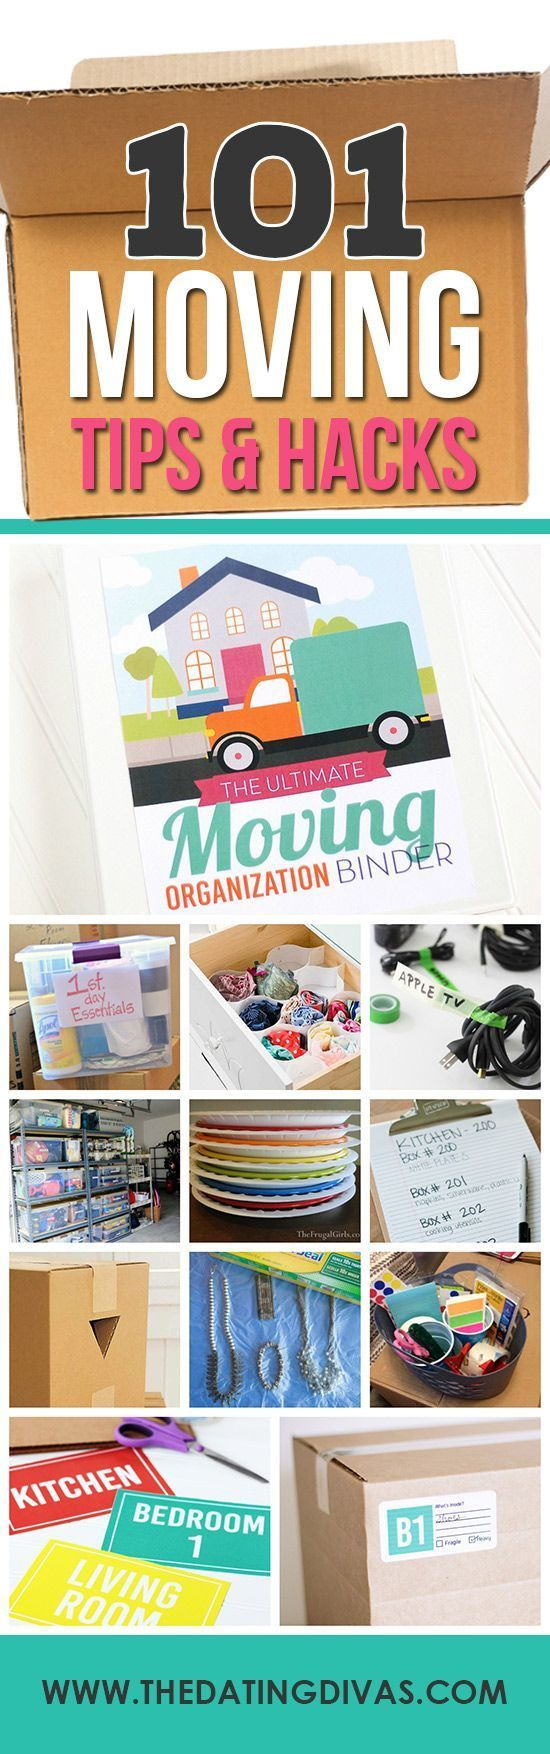 Over 100 packing, cleaning, and moving tips, ideas, and hacks to make your move easier! #1 is the best part of this whole thing. A printable Moving Binder- including an awesome moving timeline, checklists, cute moving announcement cards, and everything! w